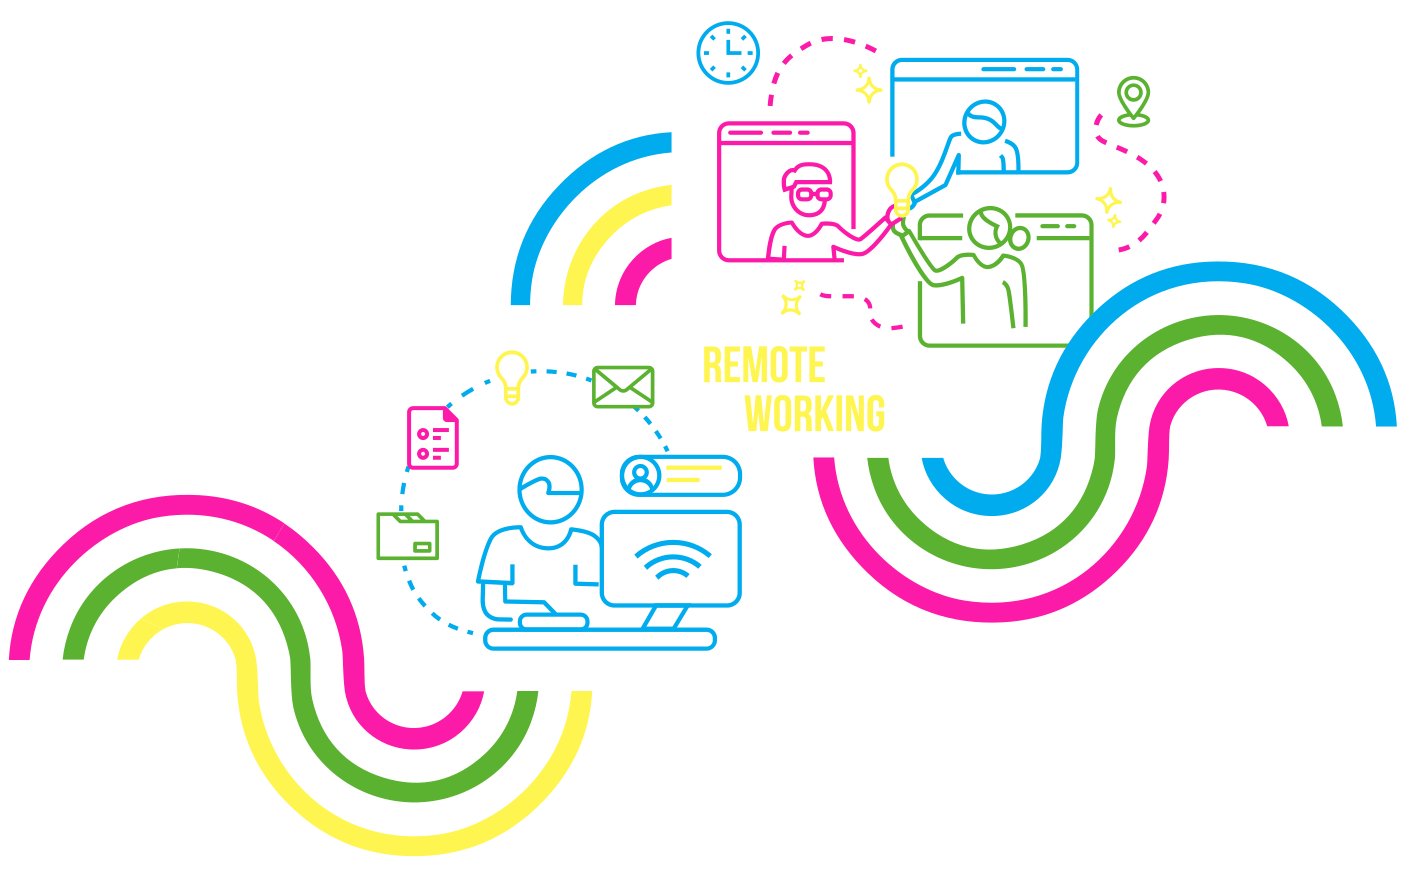 Work Together Anywhere - Agile Wise - Trabajo Colaborativo